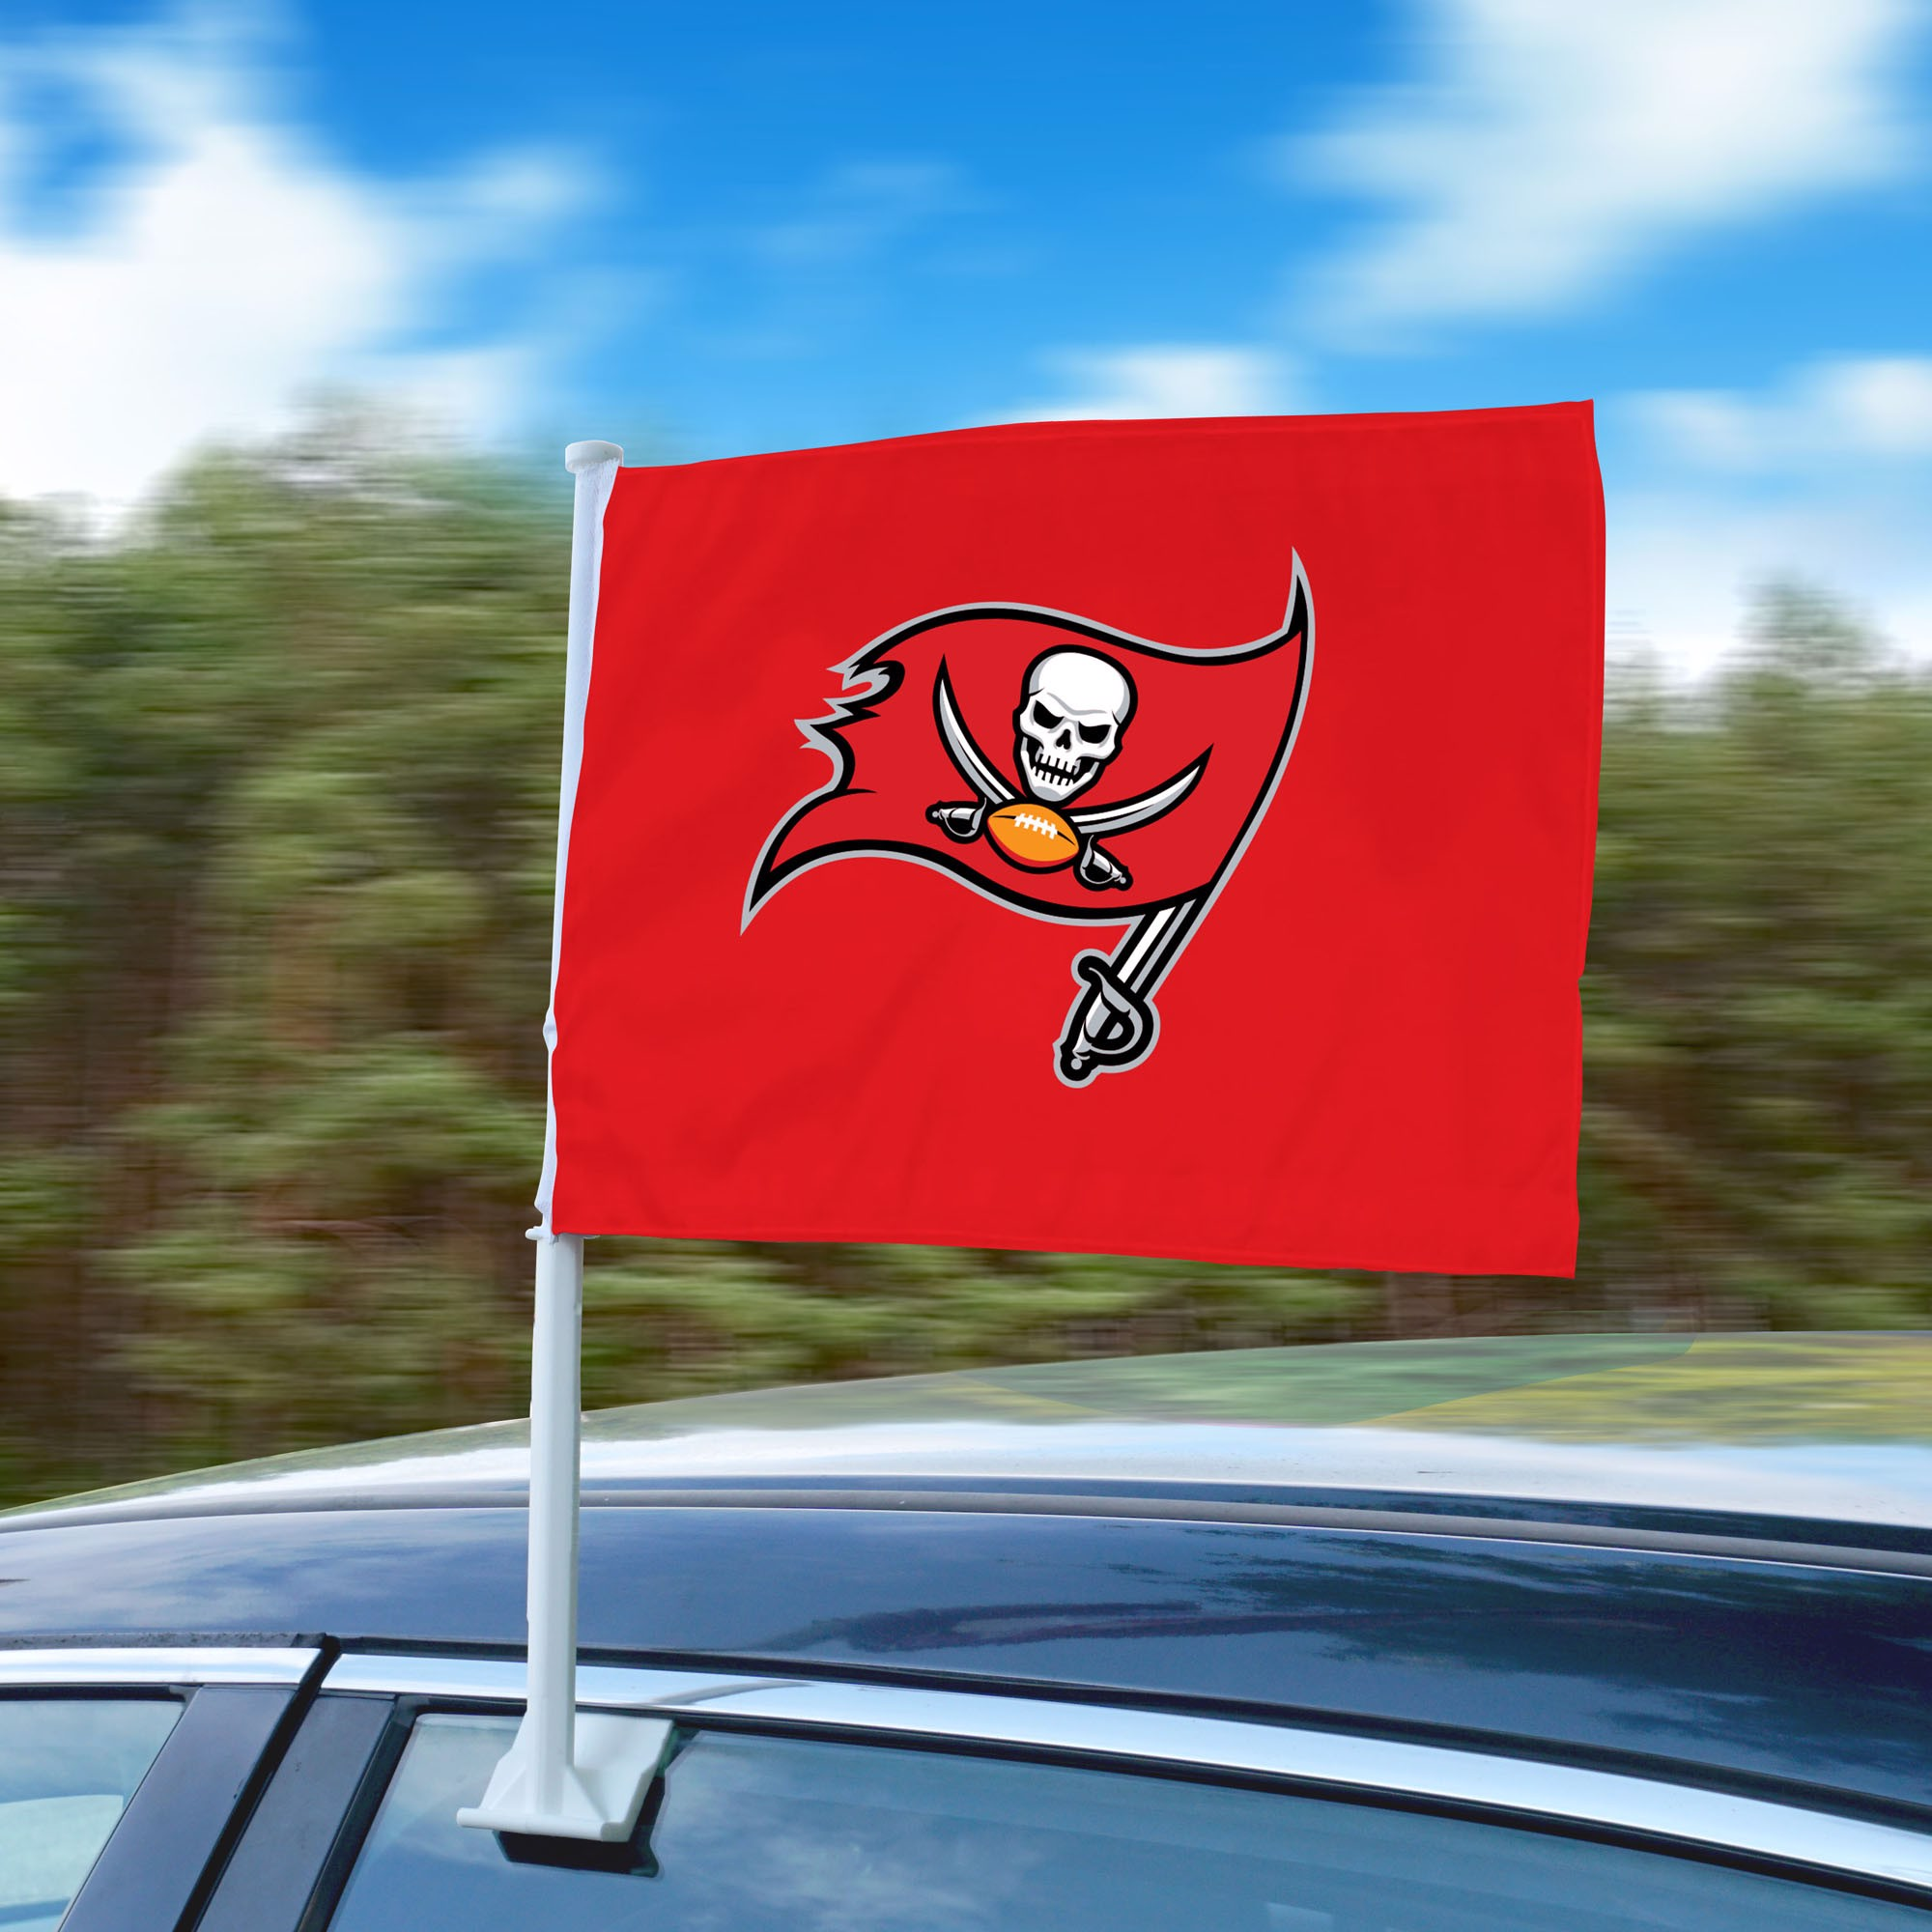 Nfl Tampa Bay Buccaneers Car Flag Fanmats Sports Licensing Solutions Llc